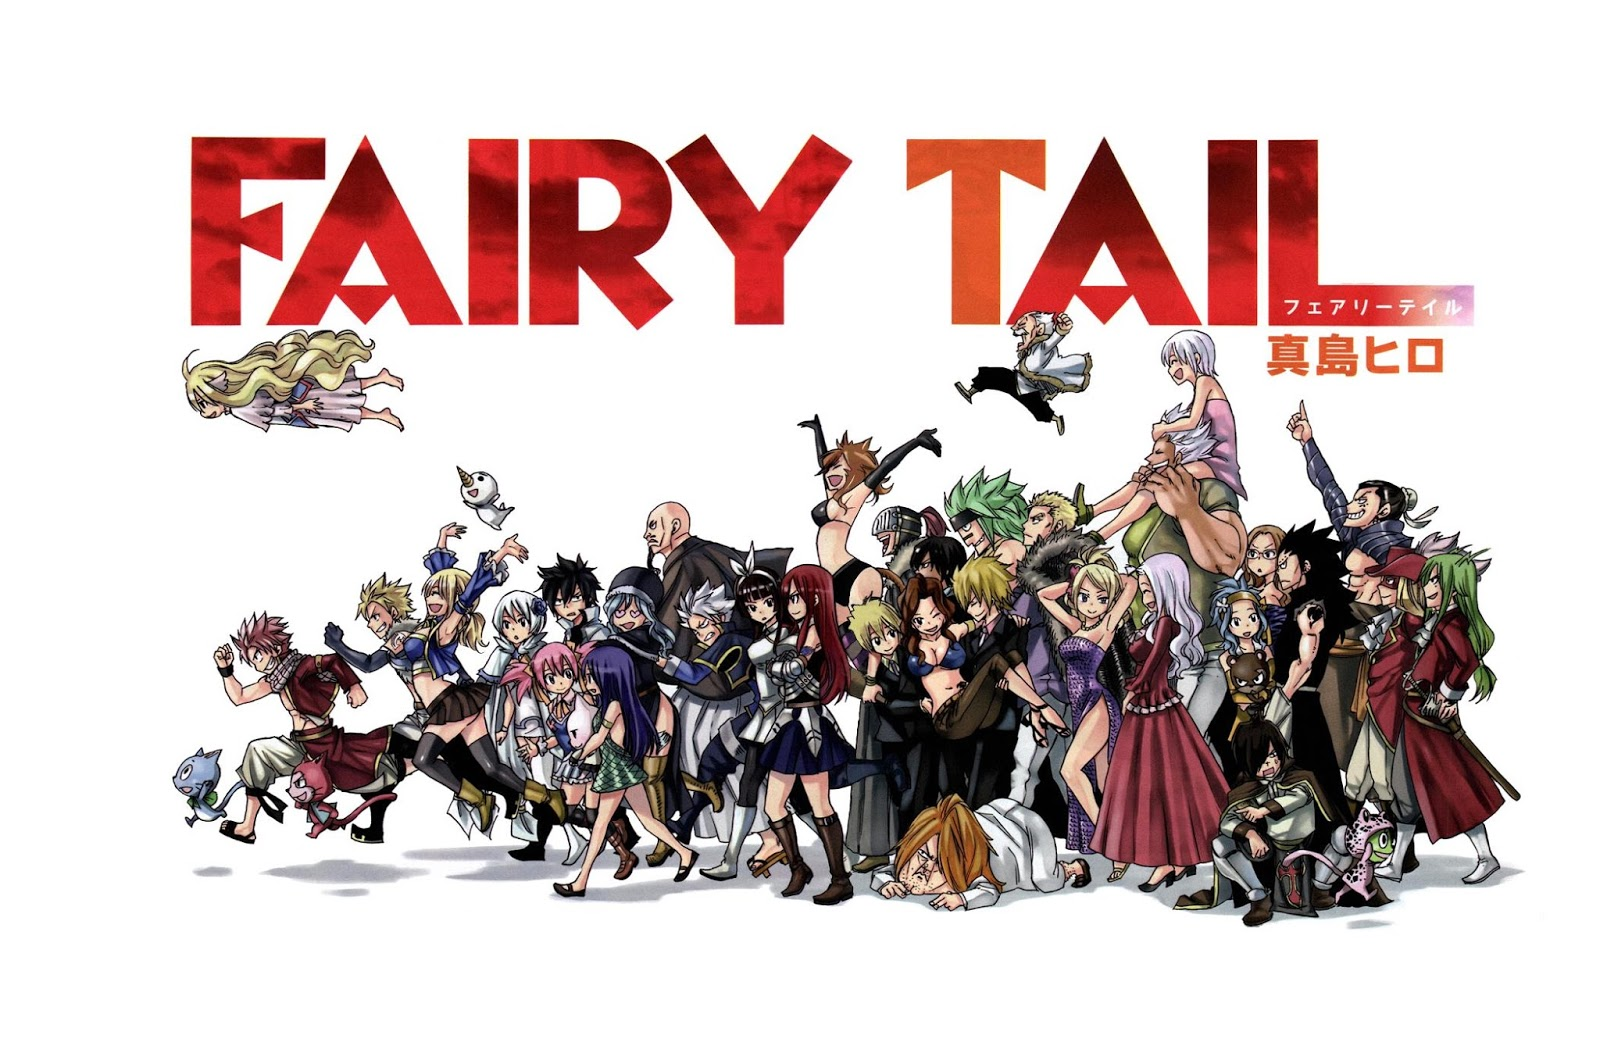 Fairy Tail Anime Final Season To Premiere In 2018